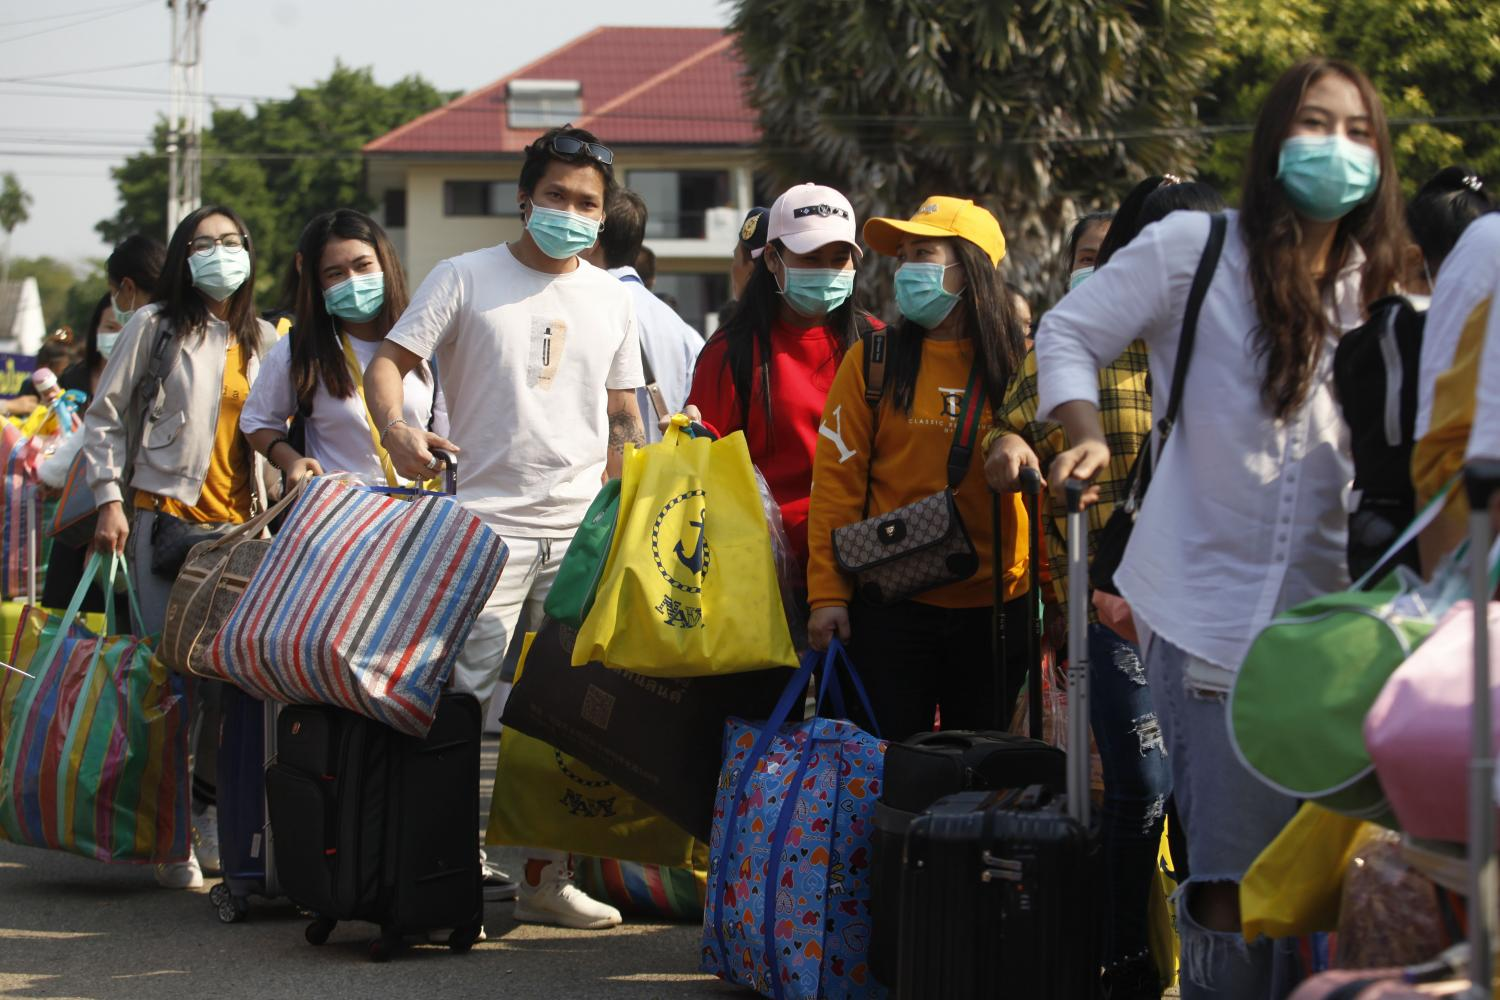 A total of 137 people walk single-file out of the quarantine facility at the Sattahip Naval Base in Chon Buri on Wednesday. (Photo by  Wichan Charoenkiatpakul)